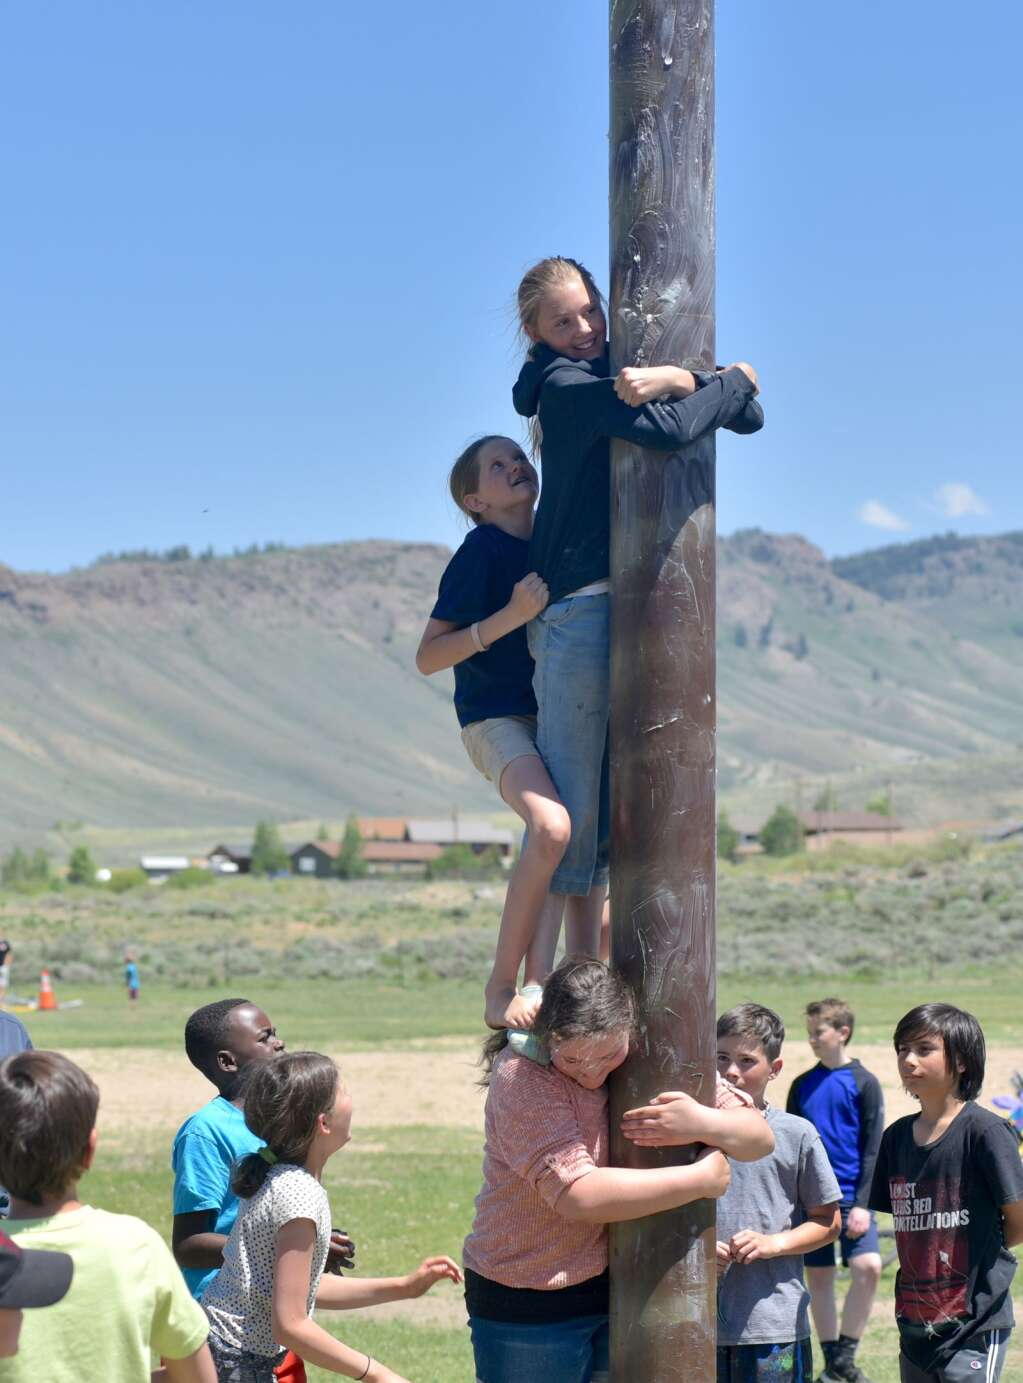 The Grease Pole Contest is a favorite tradition at Hot Sulphur Days. | Amy Golden / agolden@skyhinews.com